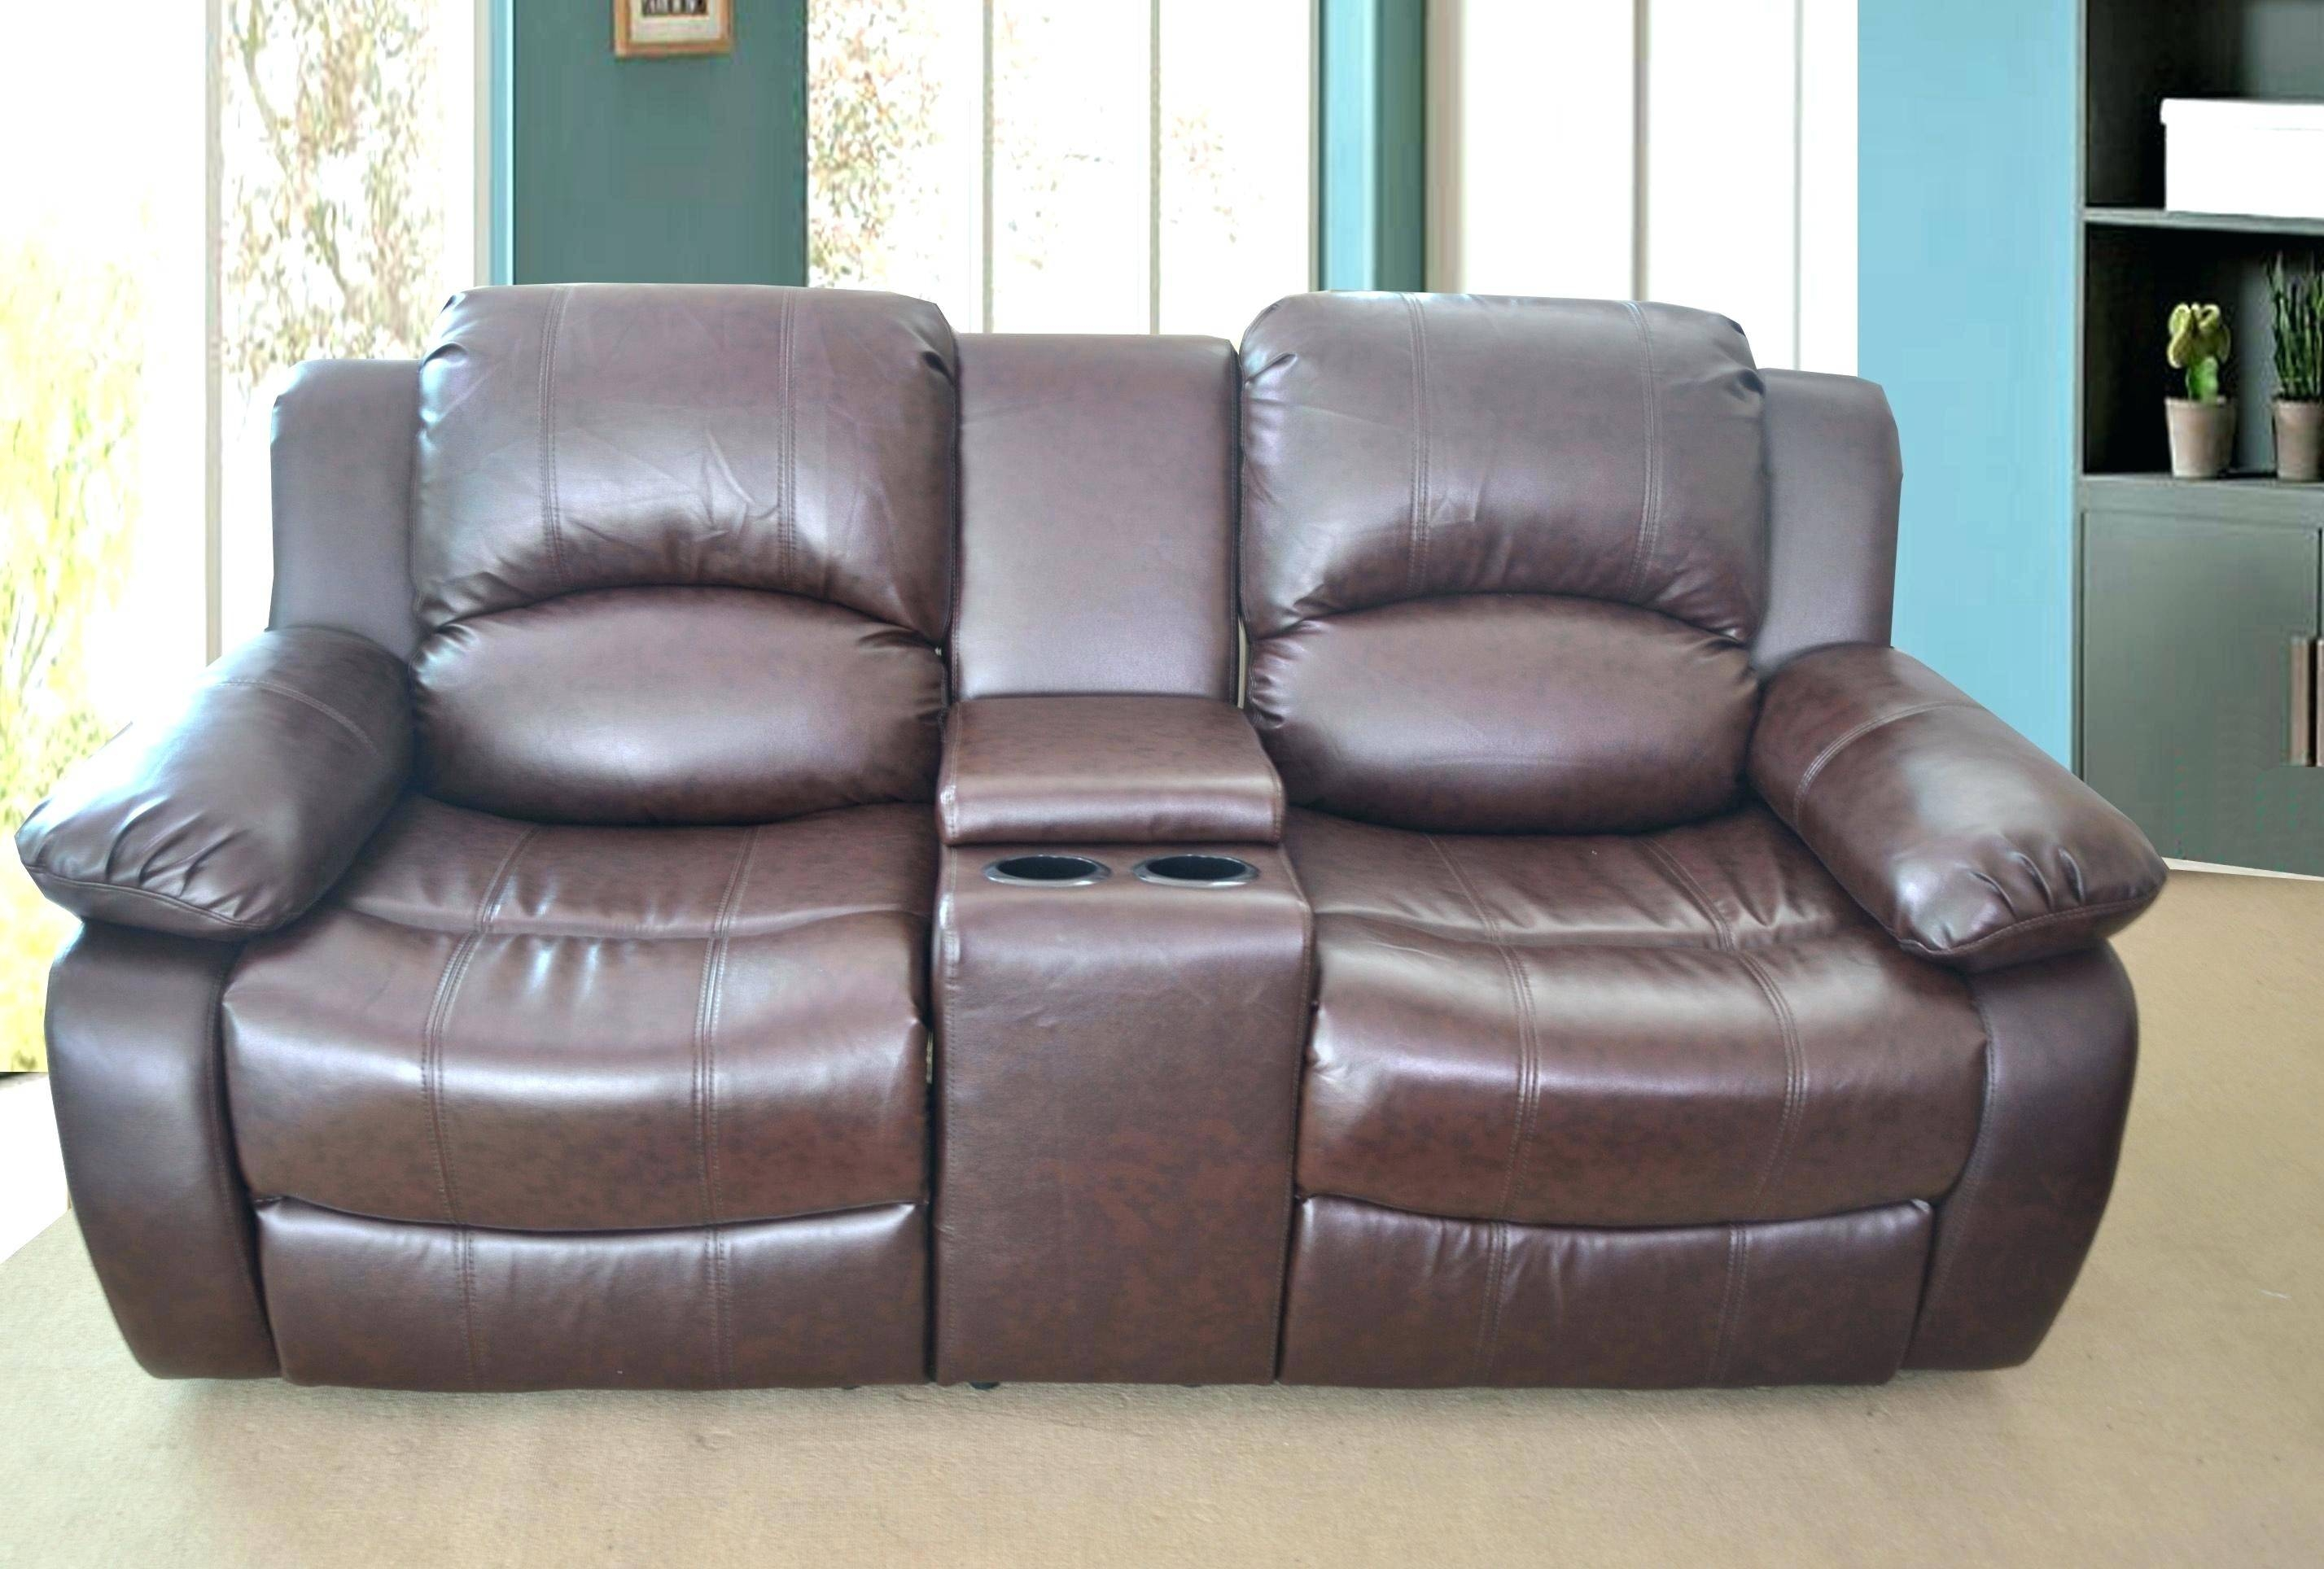 Berkline Leather Reclining Loveseat Costco Enchanting Sofas Center intended for Berkline Leather Sofas (Image 4 of 15)